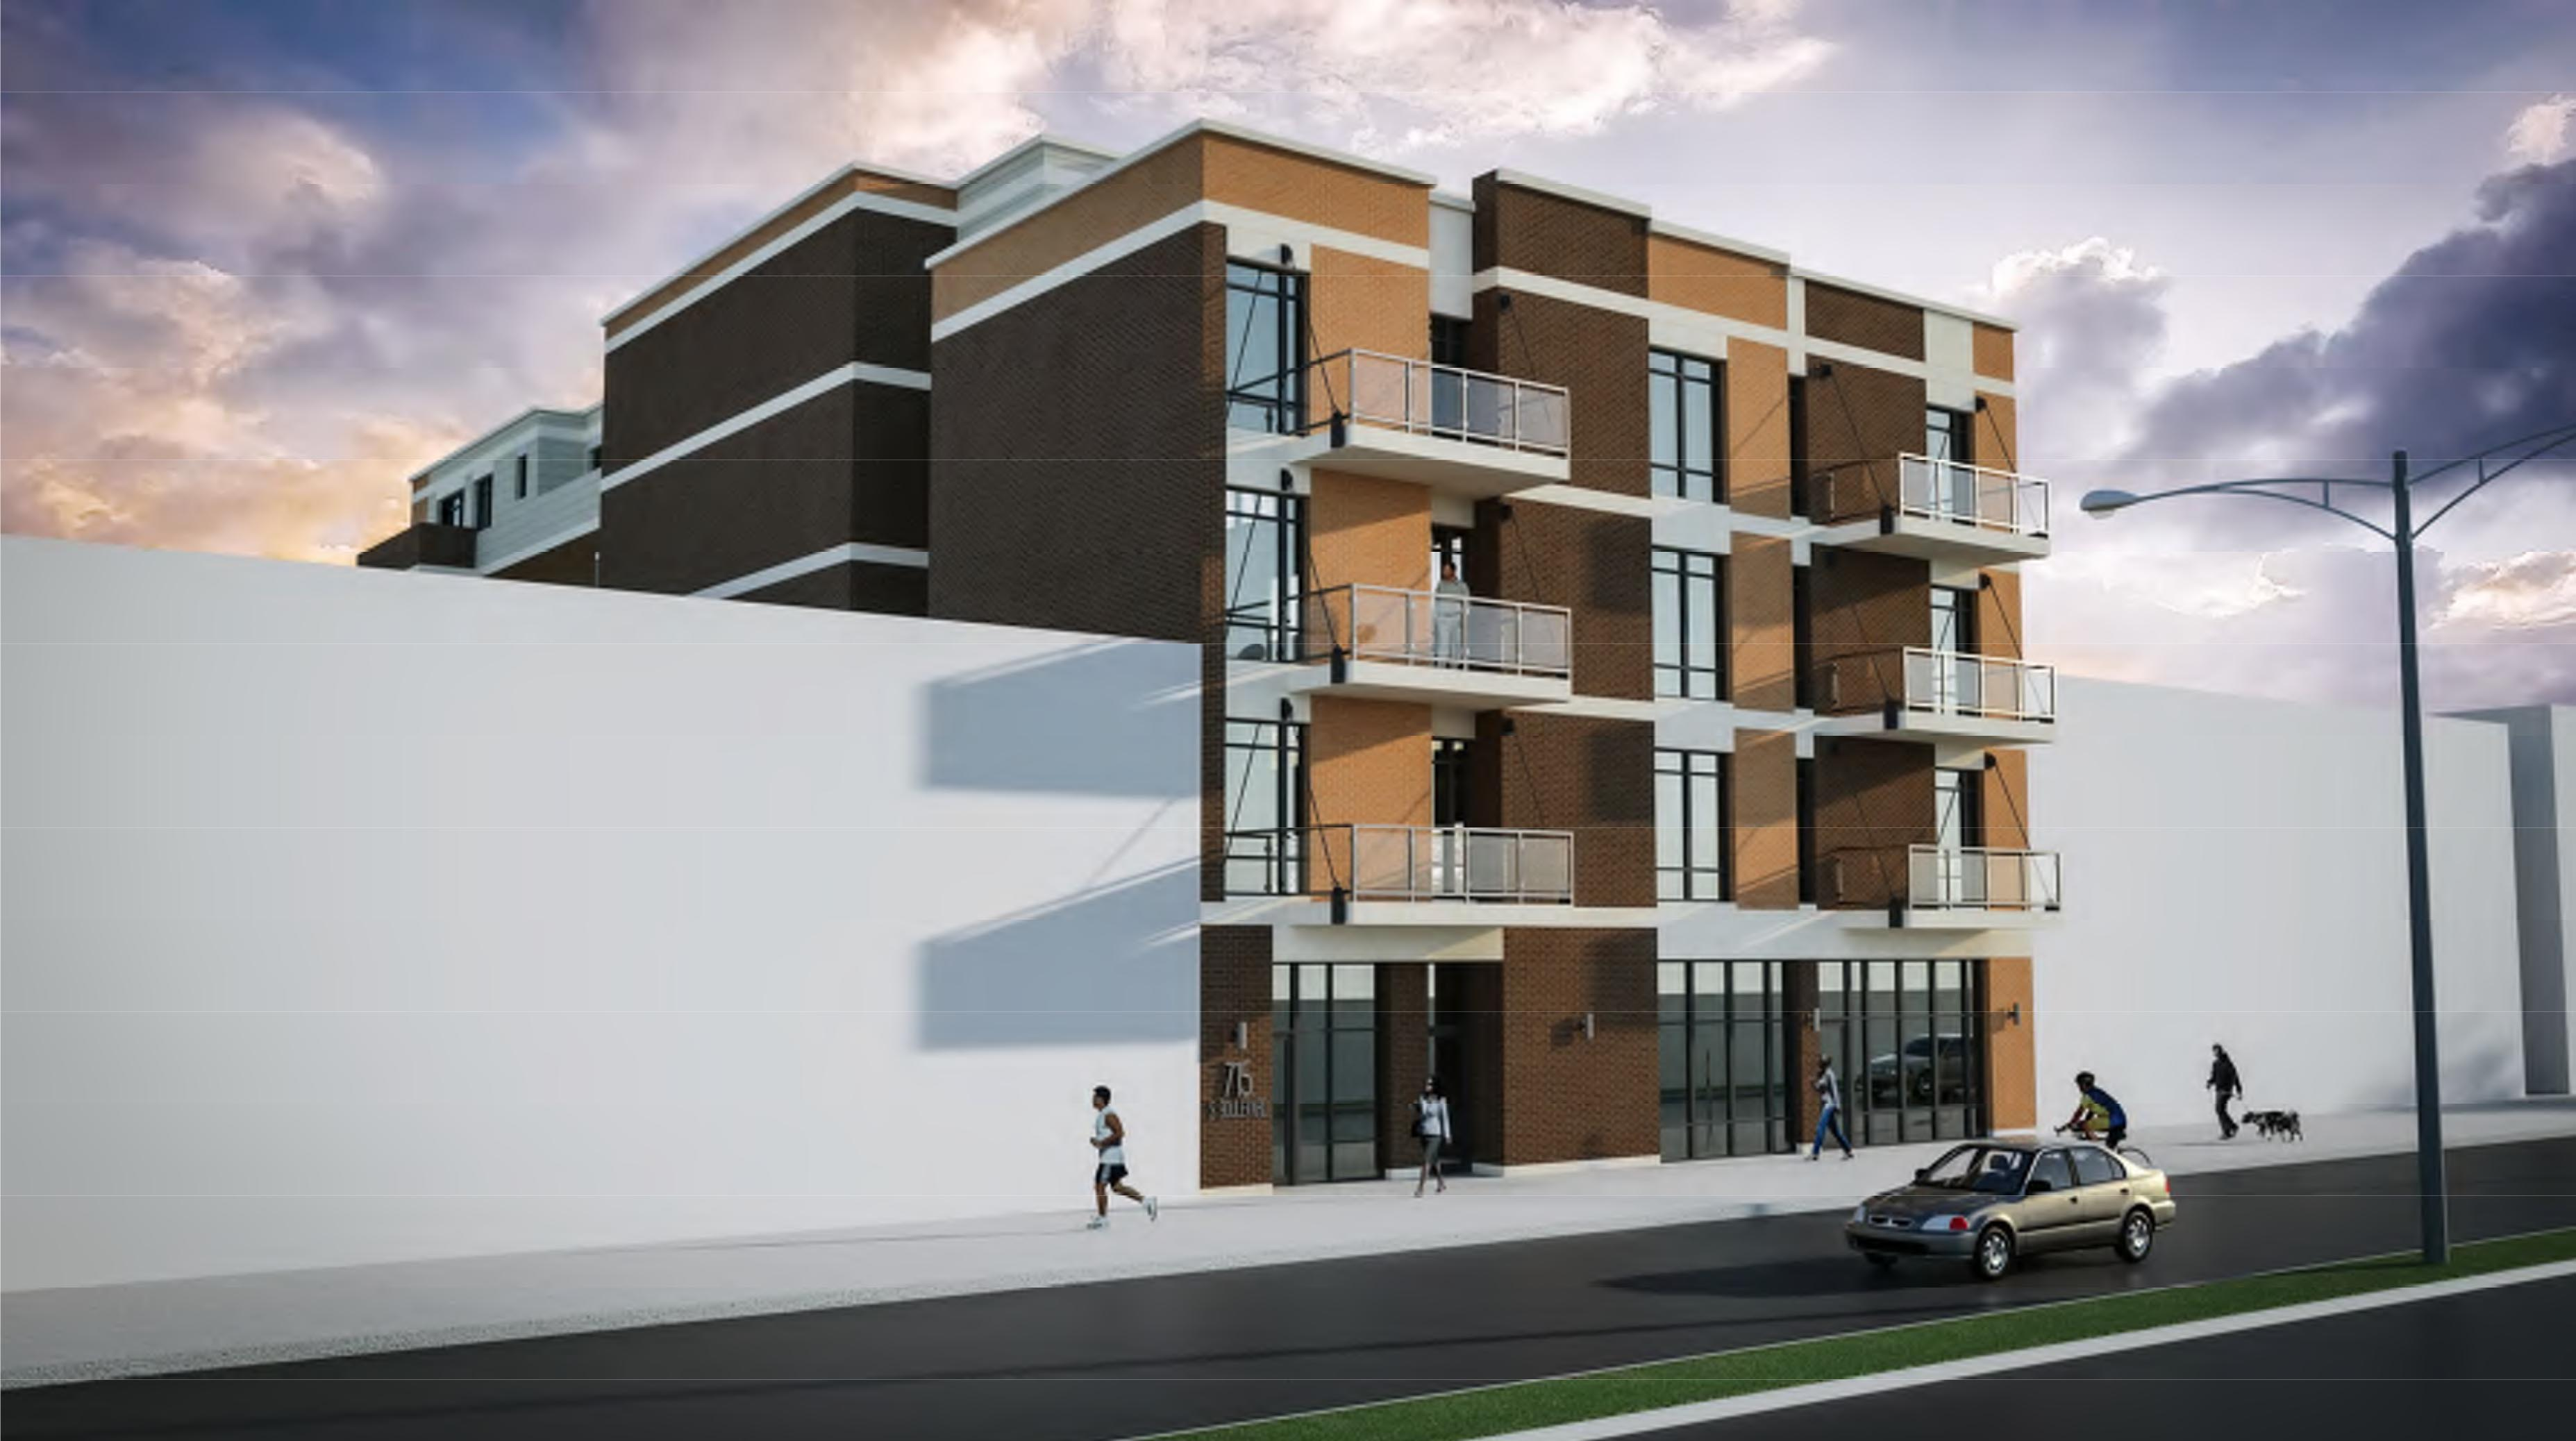 Rendering of the Residences of South Boulevard development